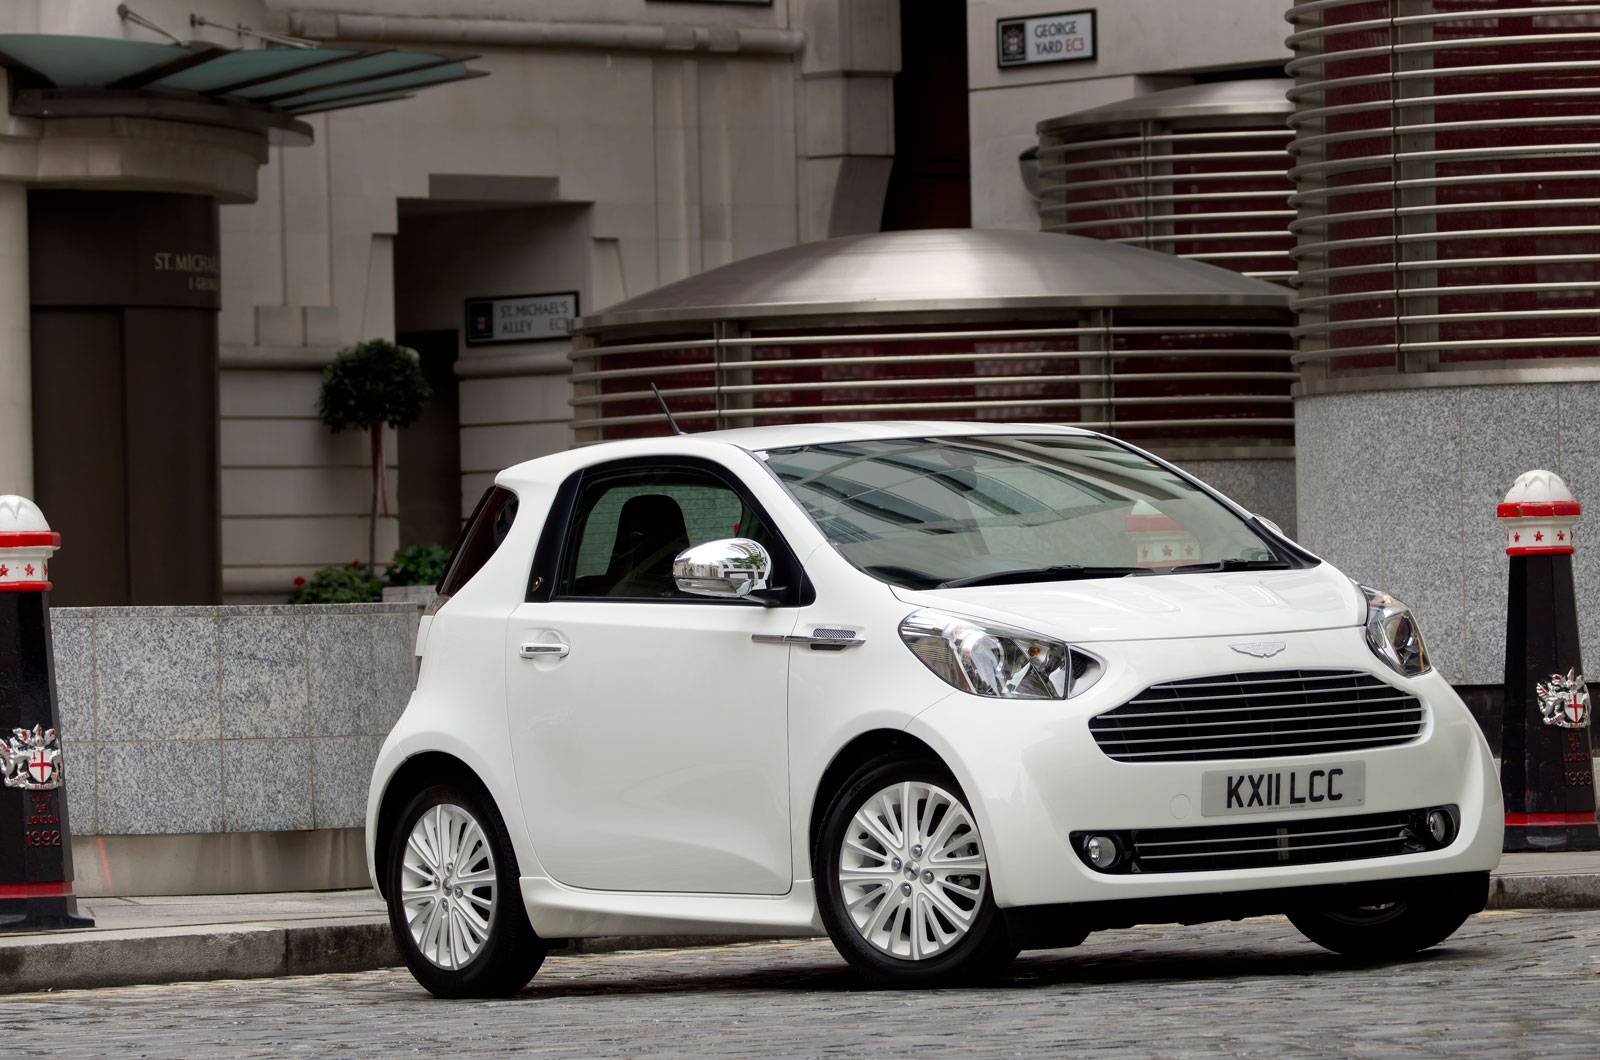 aston martin cygnet 2011-2013 review (2019) | autocar